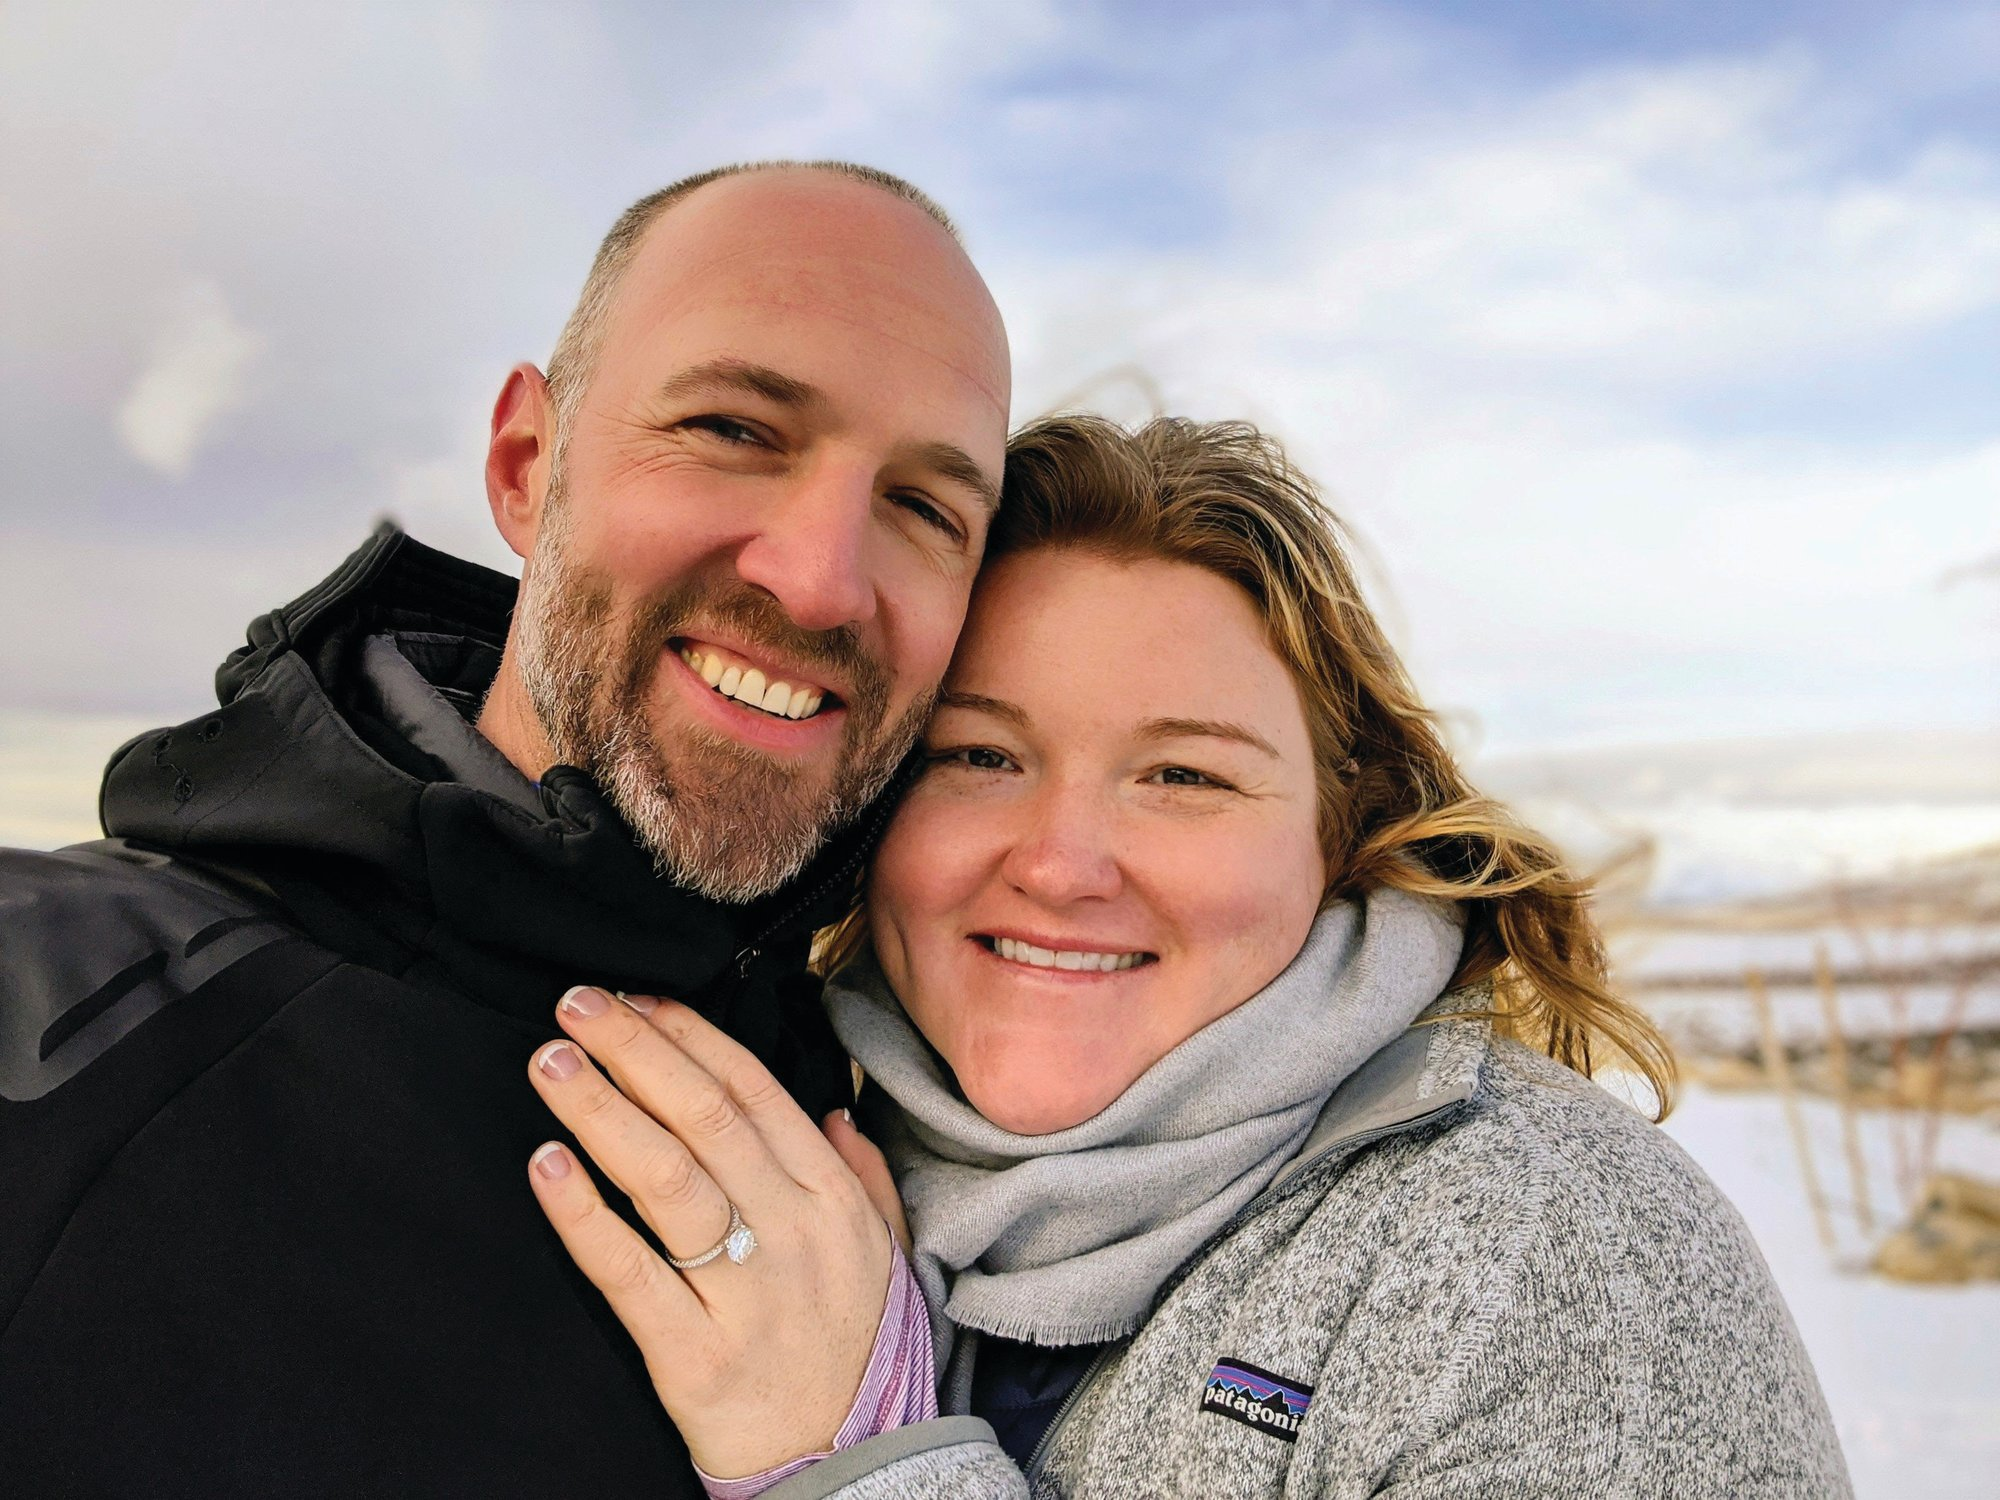 Kate Whiting and Jake Avery are seen on Feb. 6, soon after Avery proposed in Nevada's Ruby Mountains. The two had been planning a 300-person wedding but decided to marry June 6 in their backyard, with a big party after the coronavirus pandemic settles.